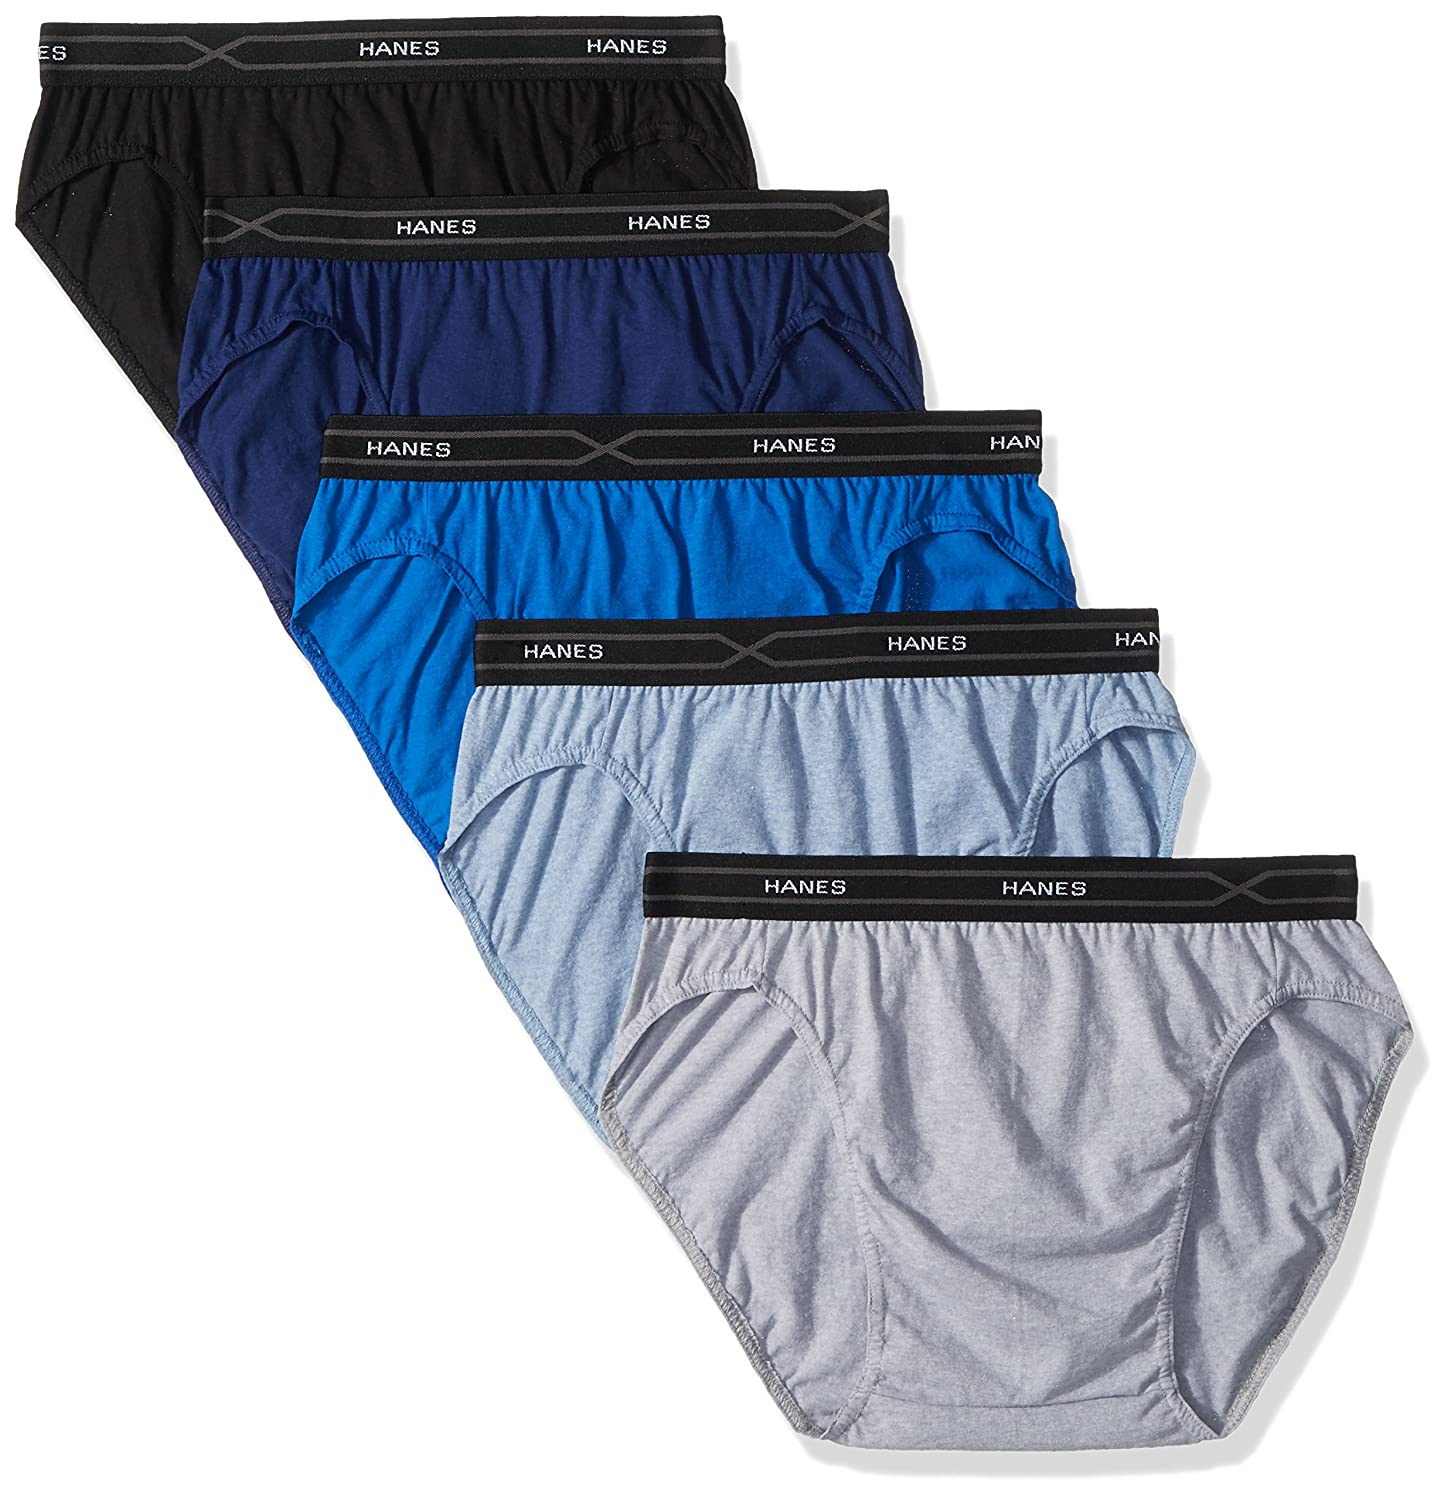 Hanes Men's 5-Pack X-Temp Low Rise Sport Brief 953LR5